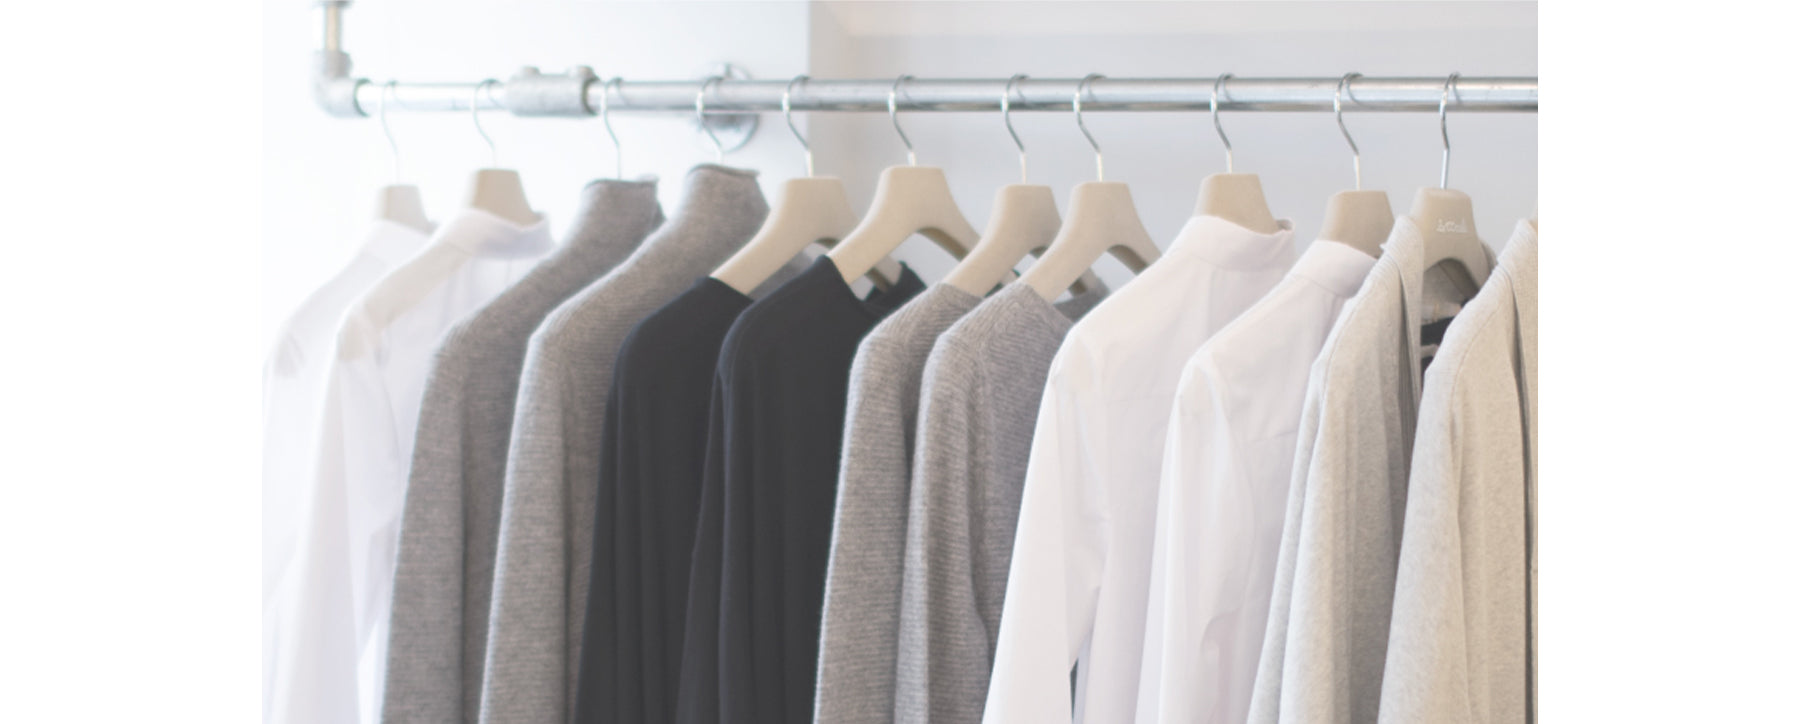 Les Cent Ciels essential garments on a silver rail over a white neutral background